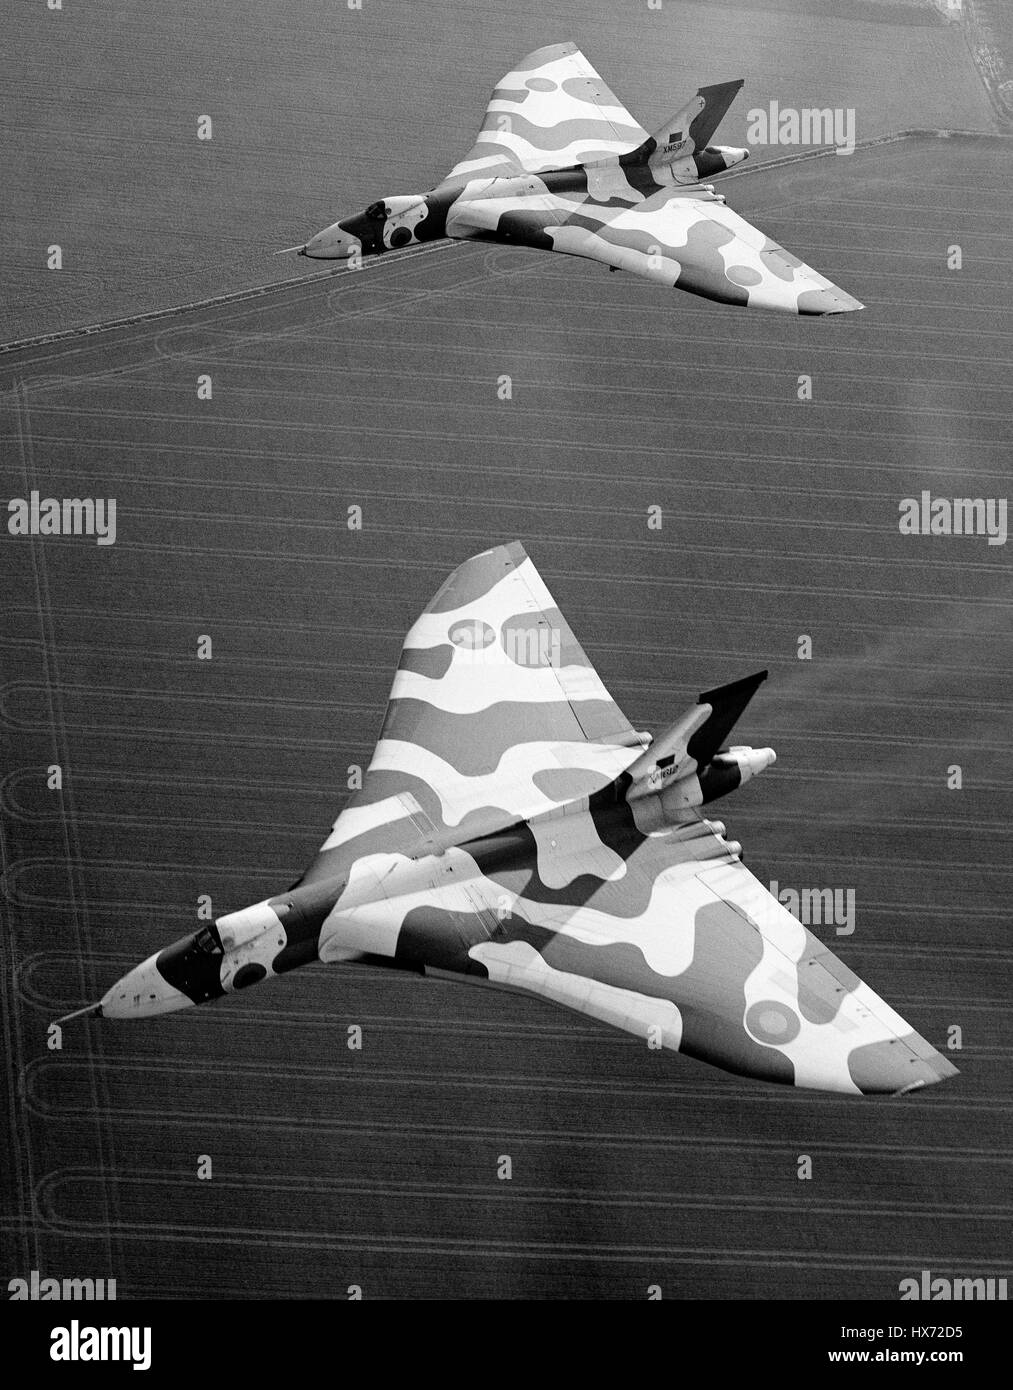 2 Avro Vulcan B2 bombers flying over the English countryside. - Stock Image